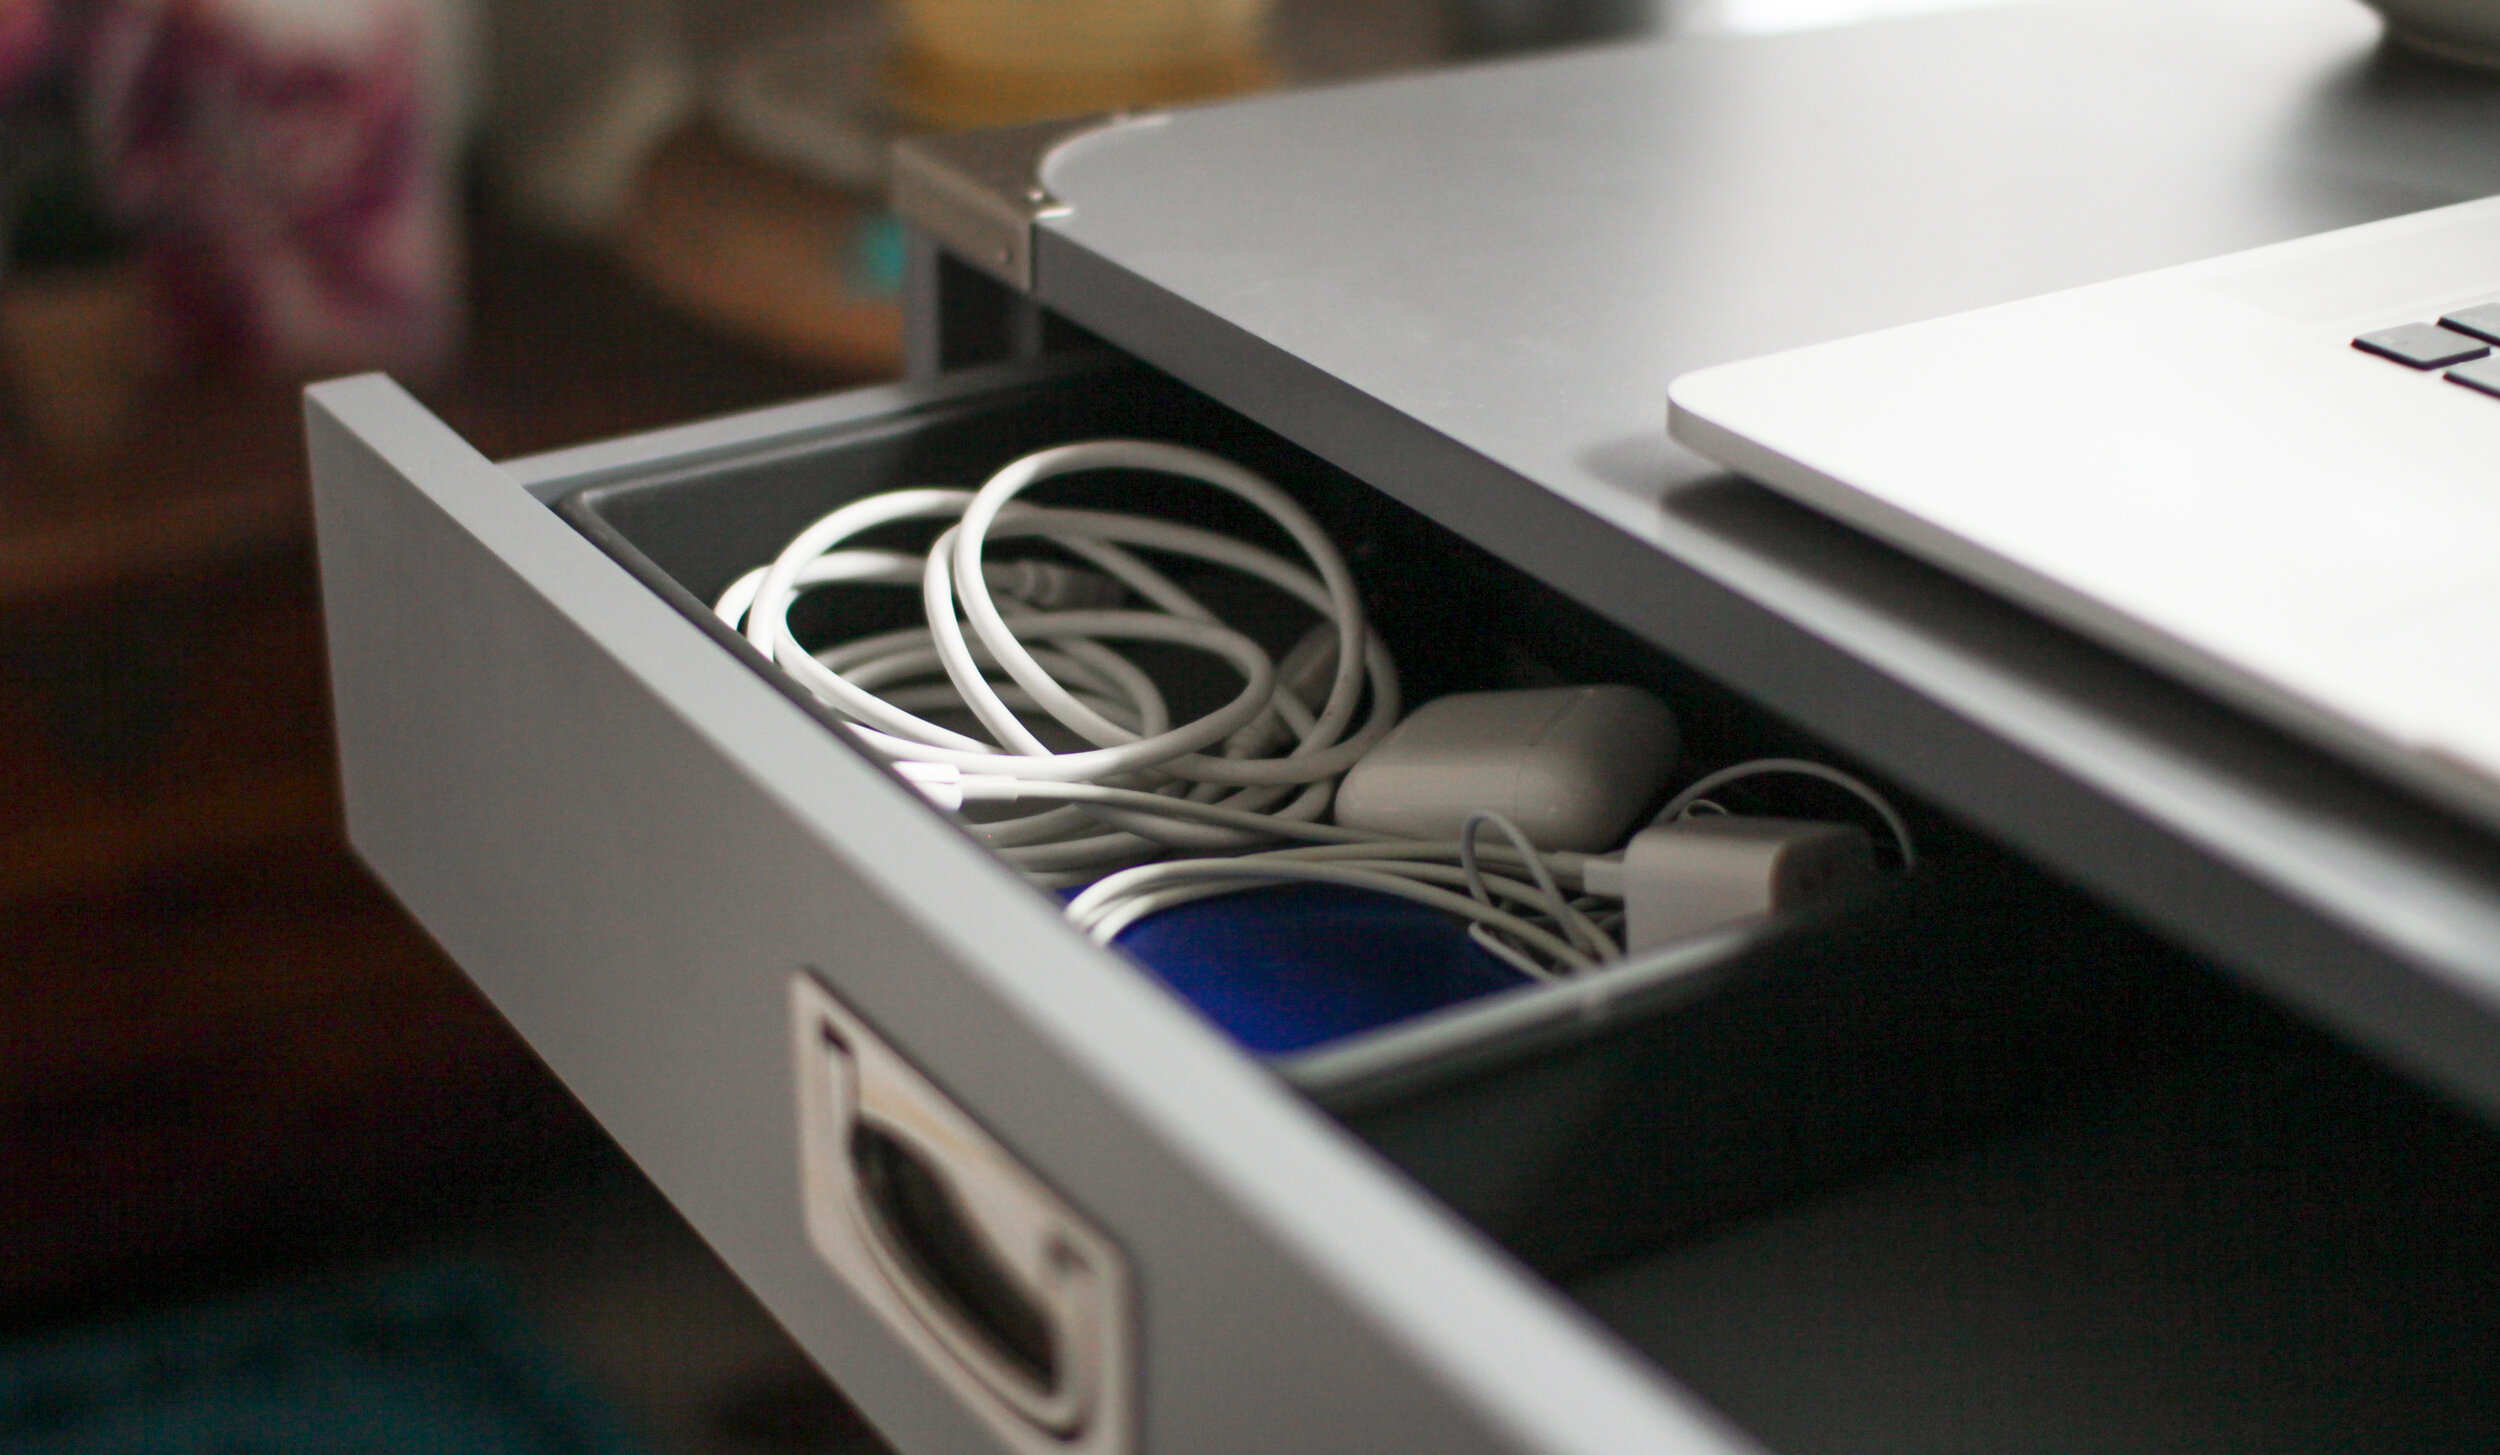 Desk organization and styling for wires and cords